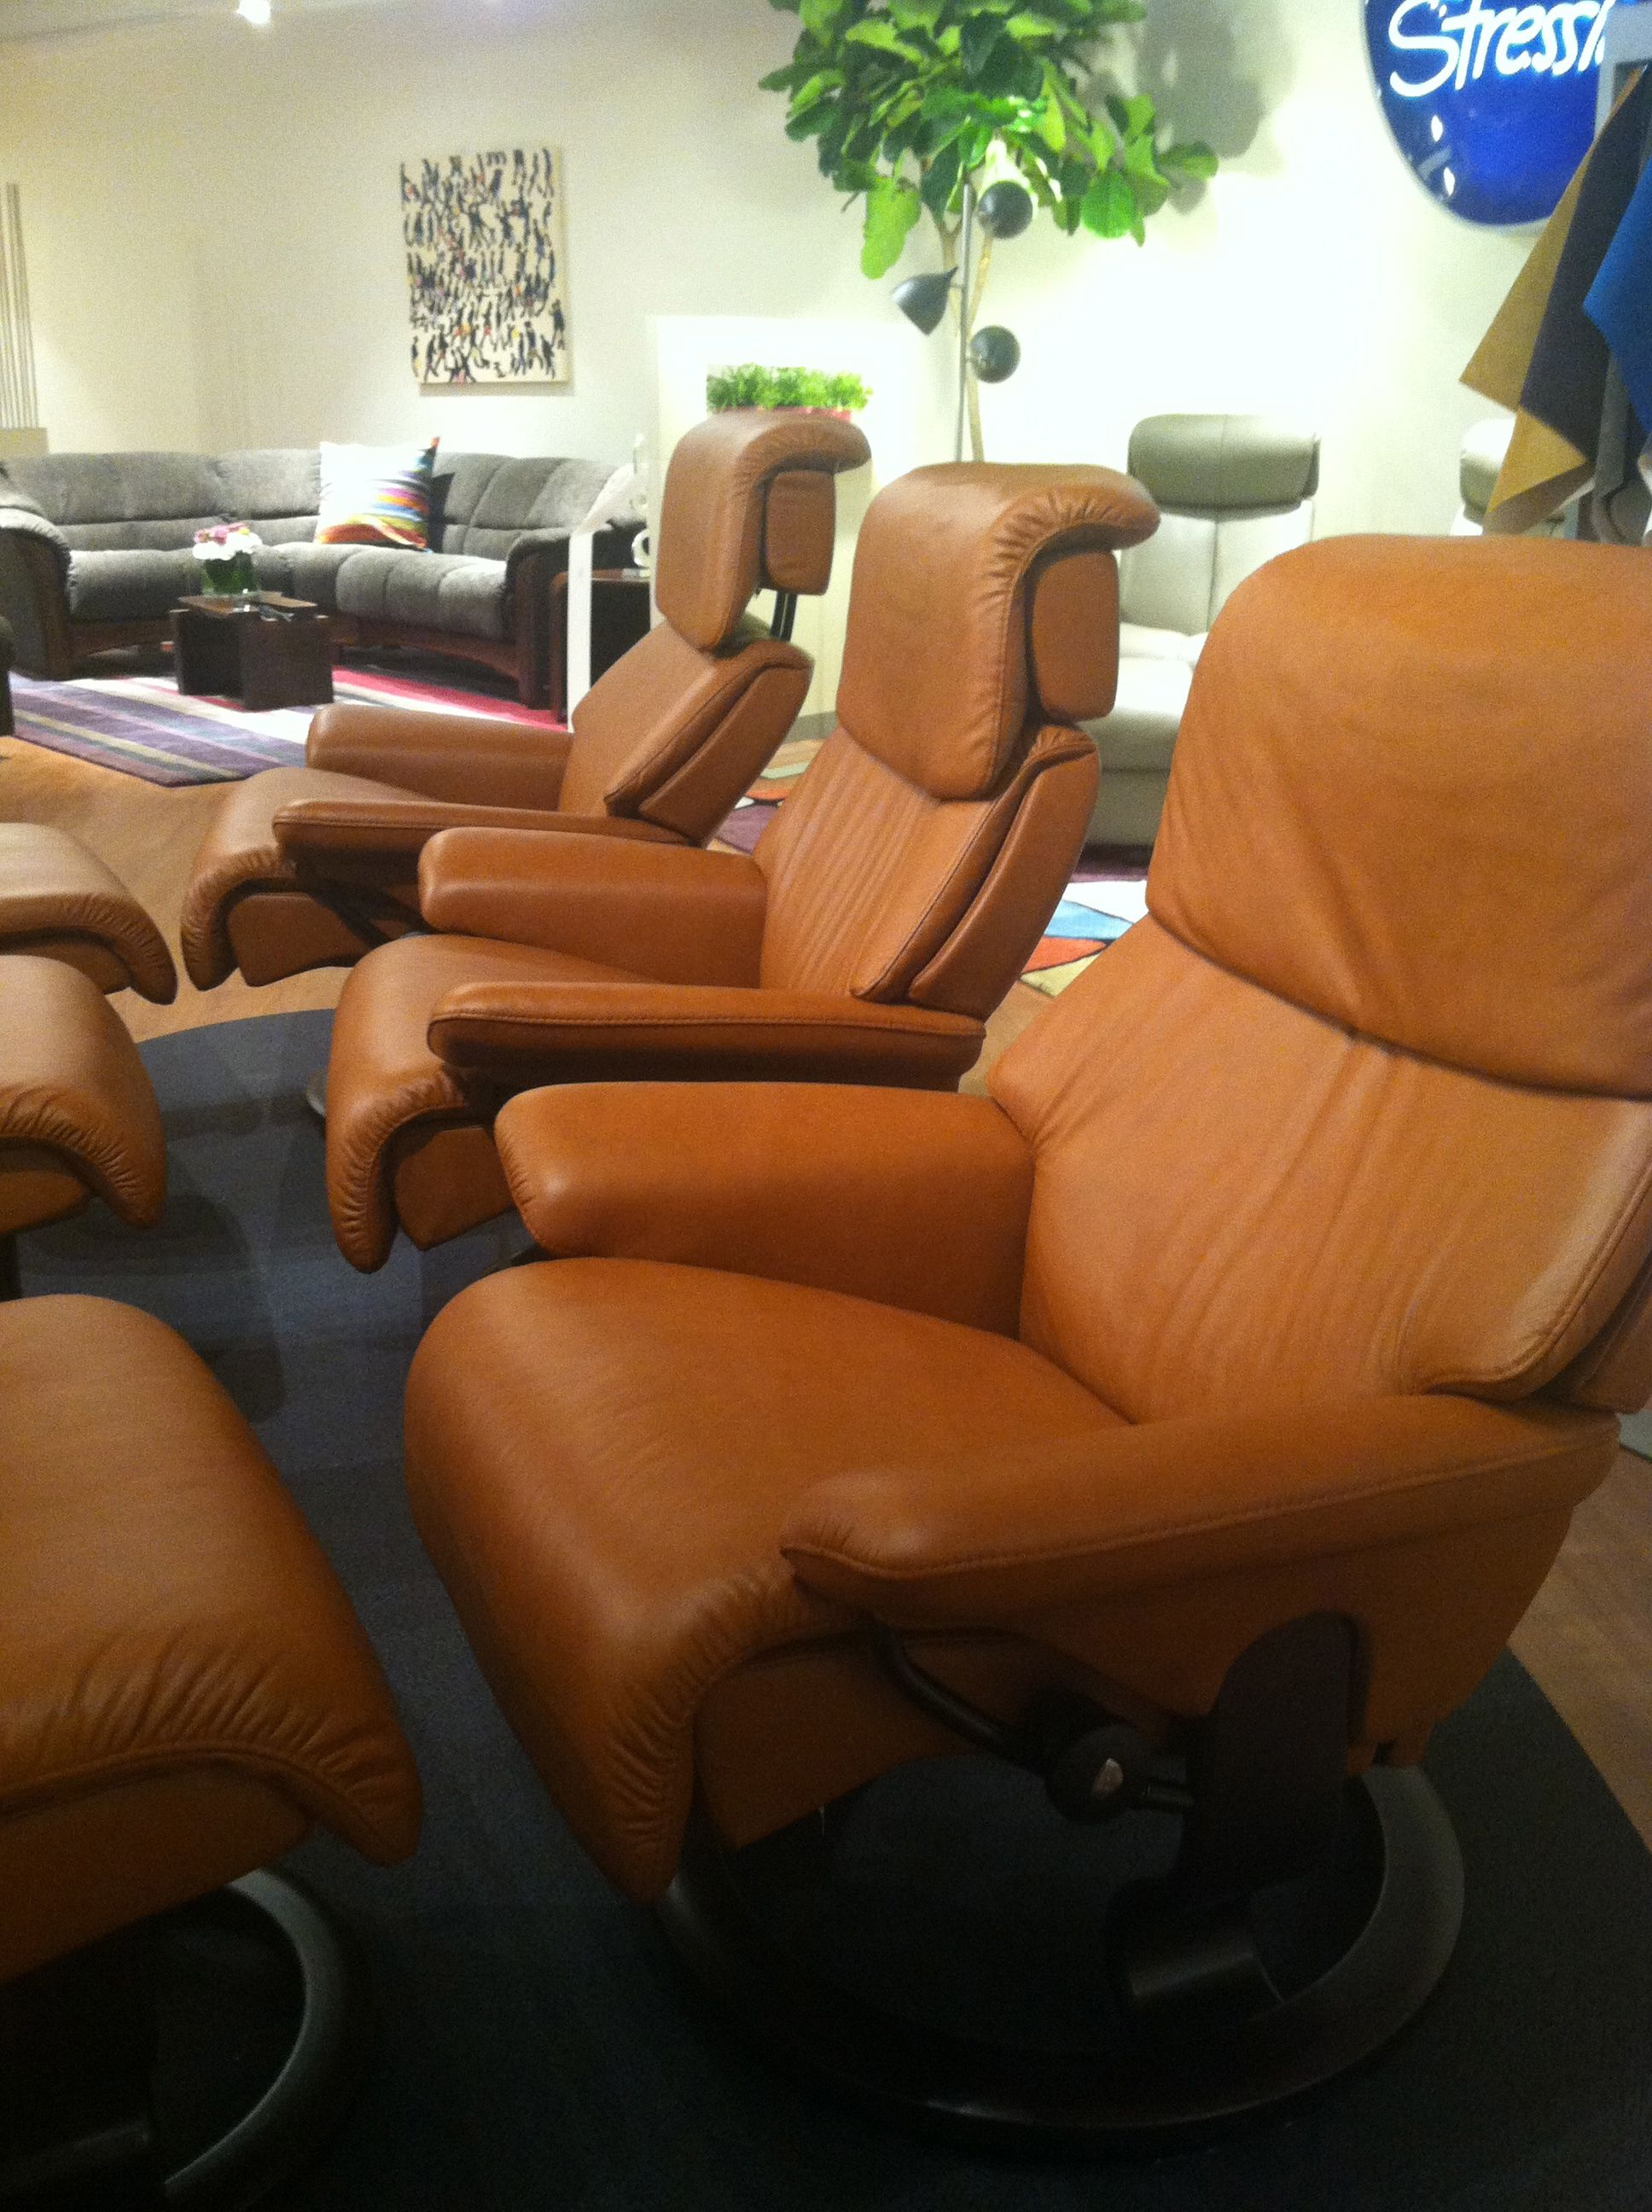 Small Medium Or Large There S A Stressless Size For Everyone